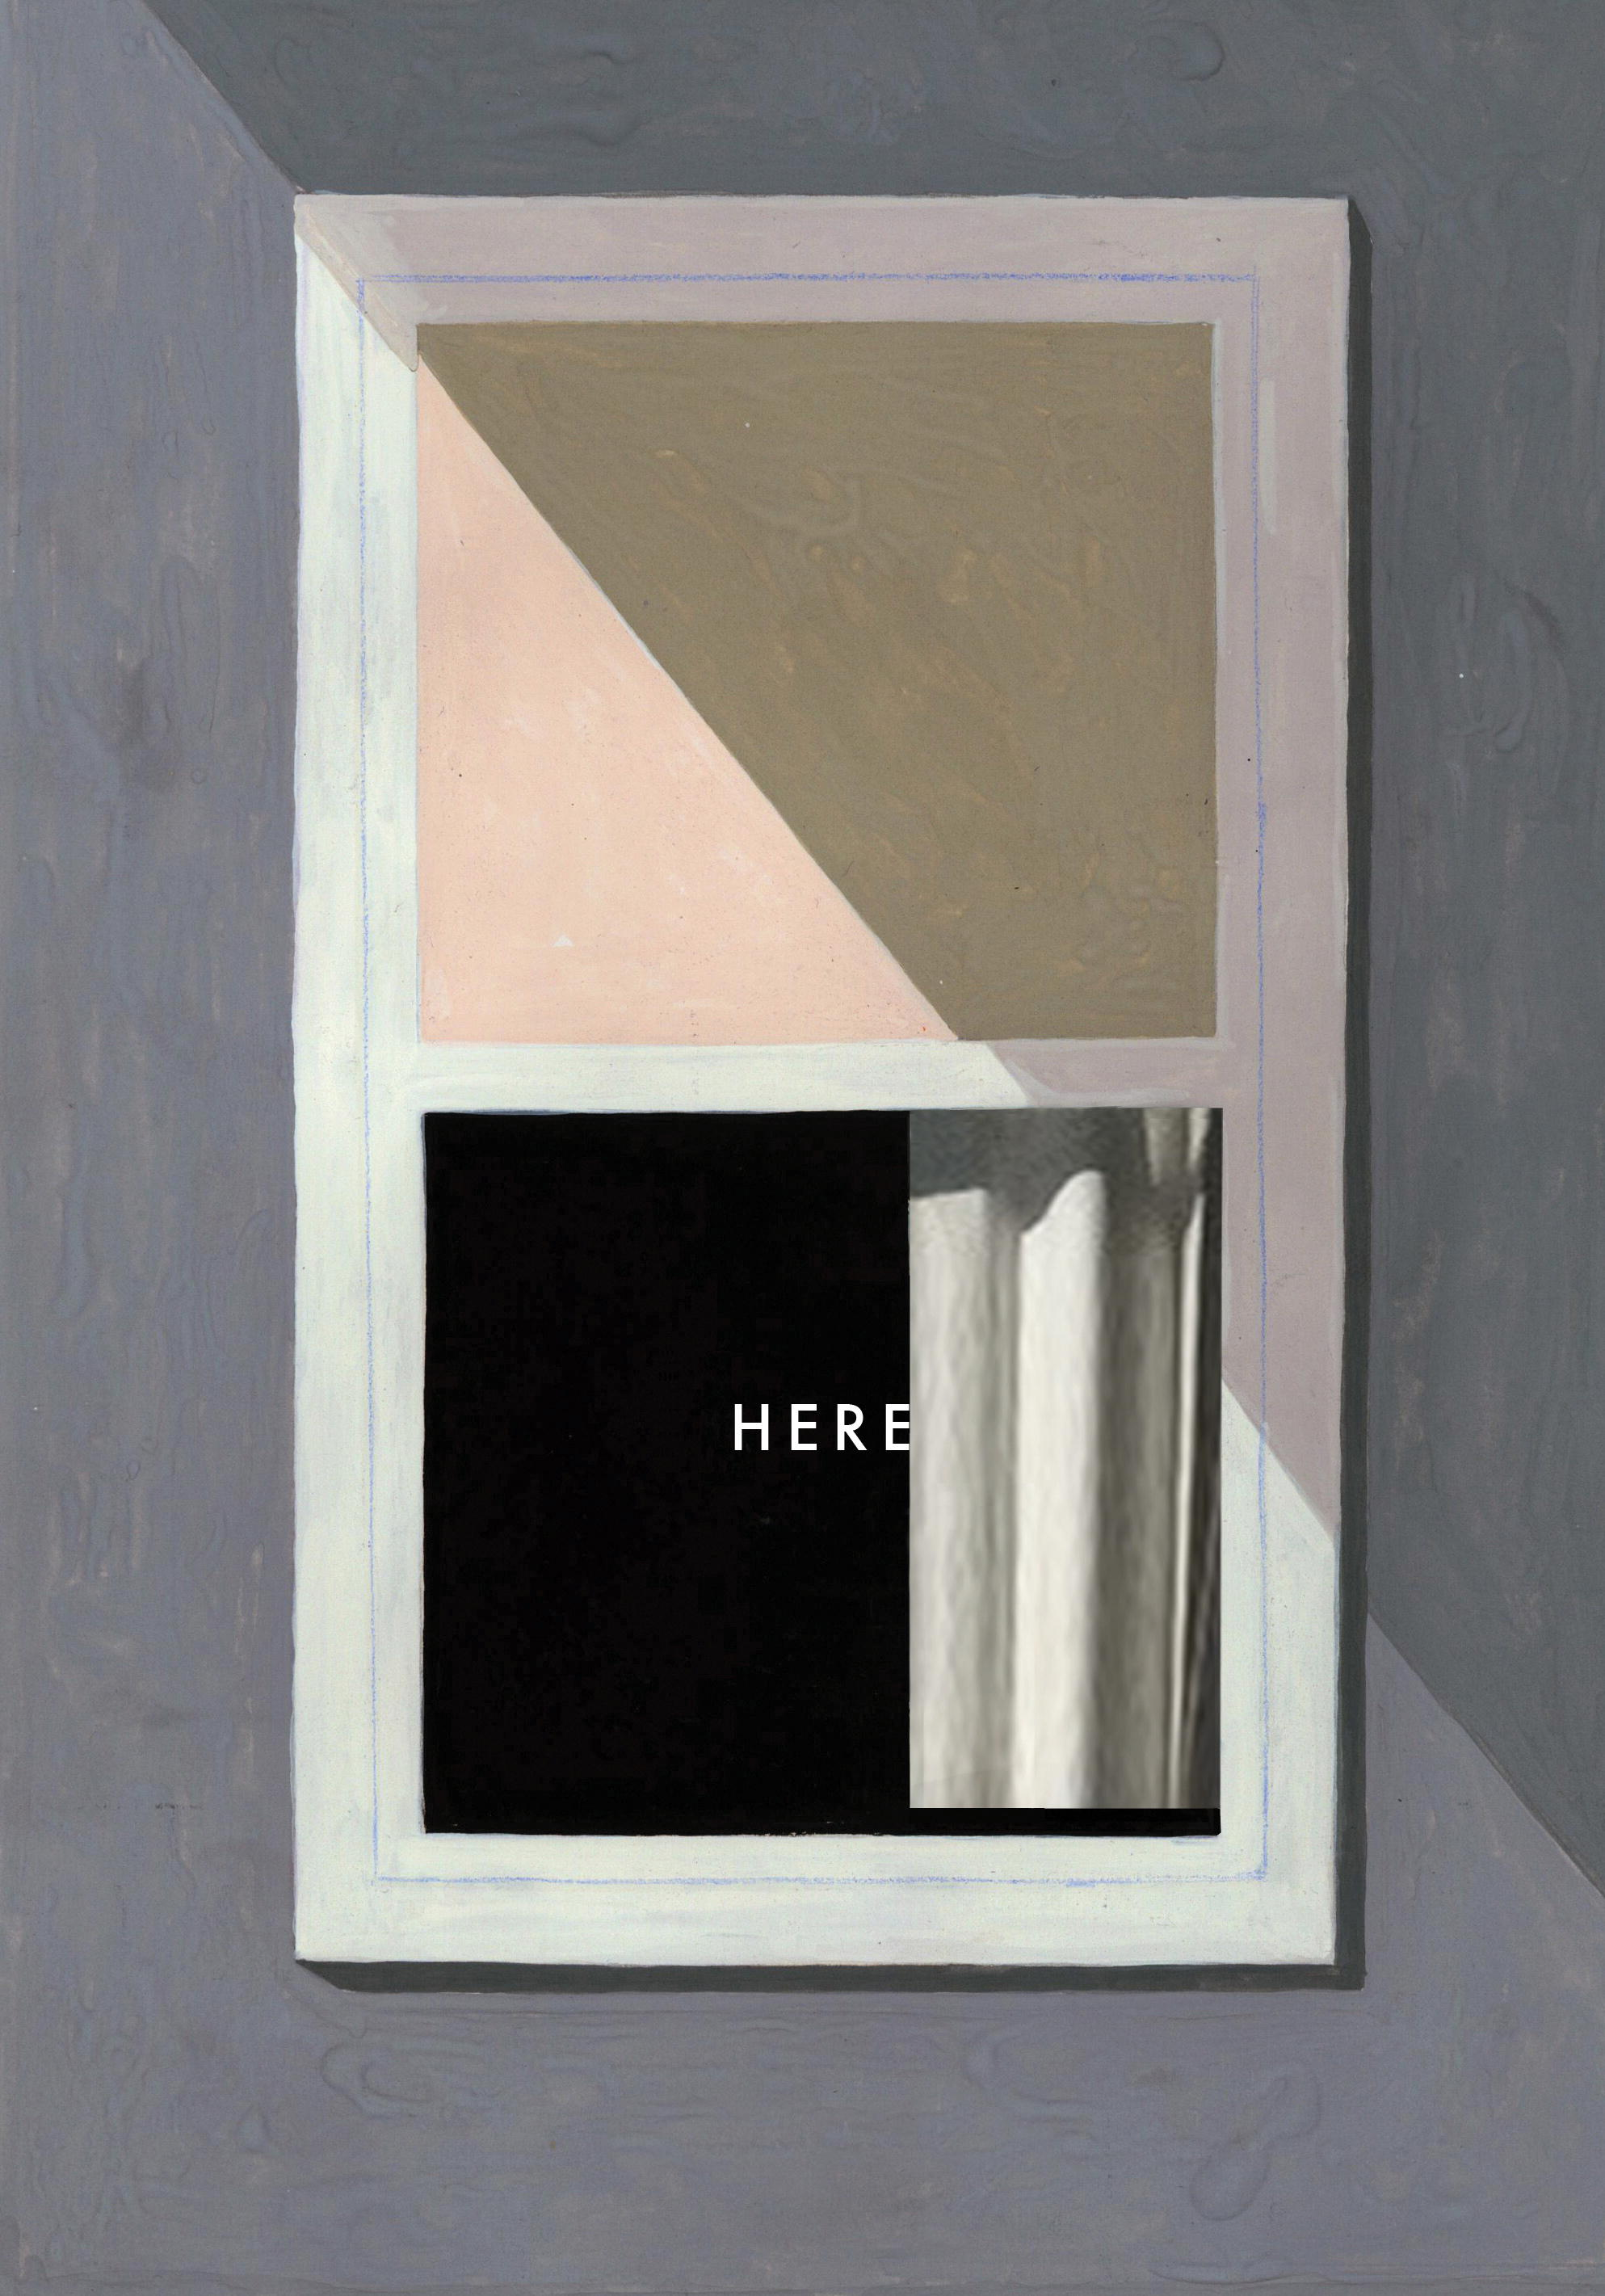 Book Launch: Here by Richard McGuire, with Peter Mendelsund